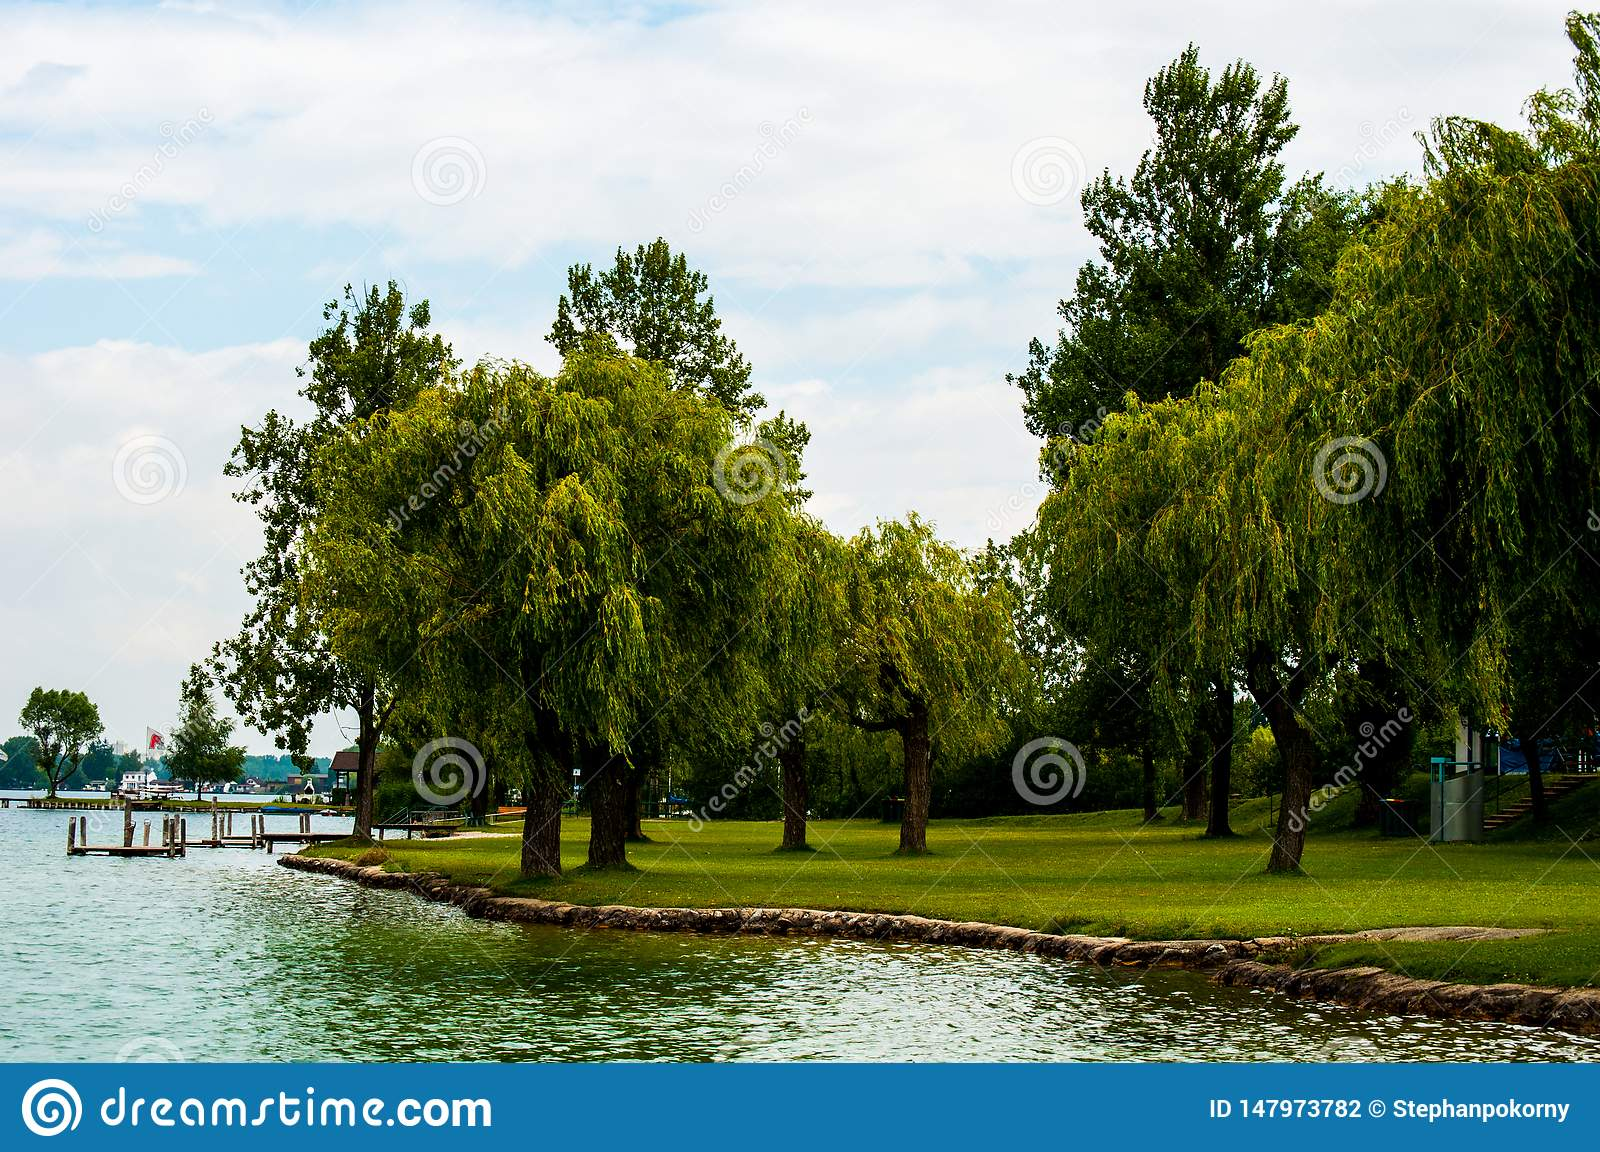 Lake With Trees In Austria Stock Photo Image Of Tree 147973782